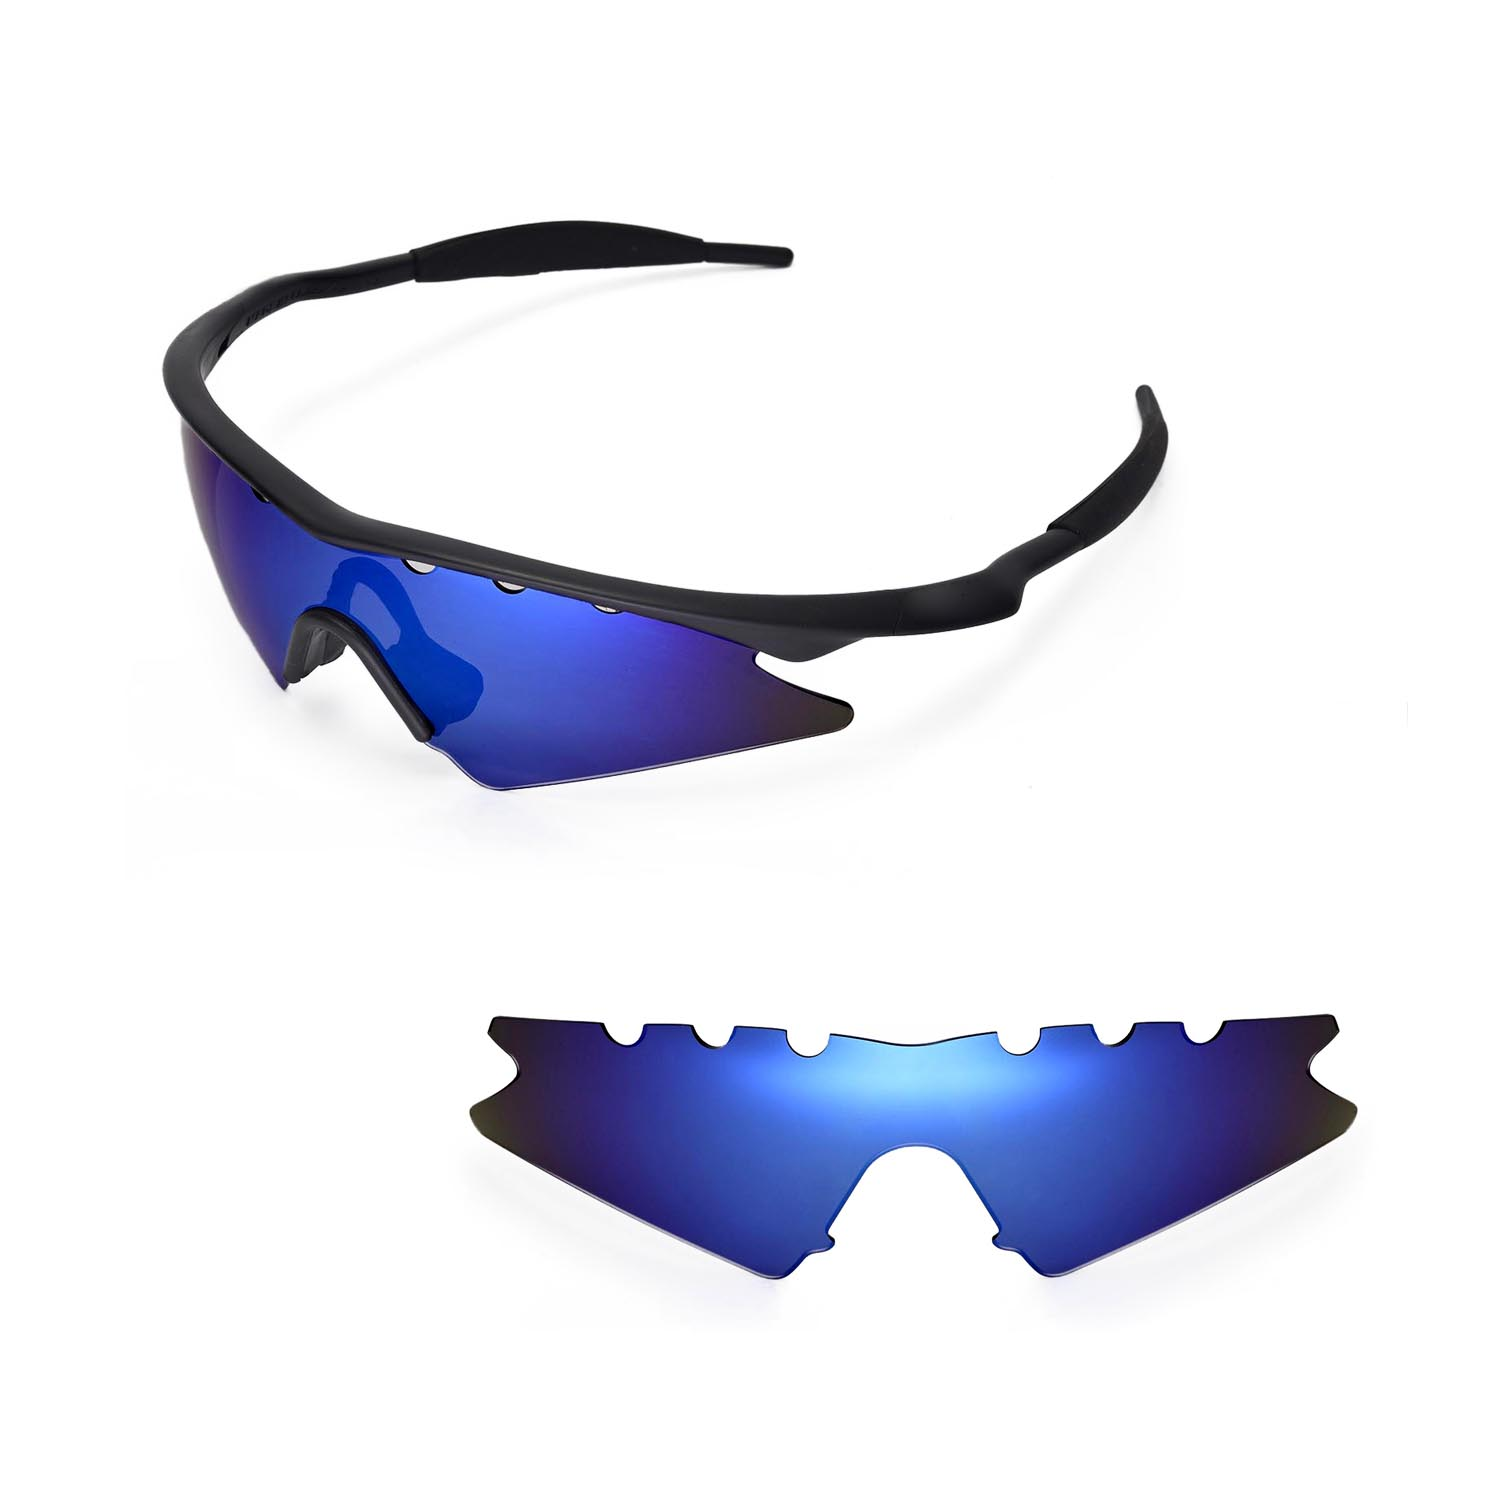 ab19fb50b77 Details about New WL Polarized Ice Blue Vented Replacement Lenses for  Oakley M Frame Sweep